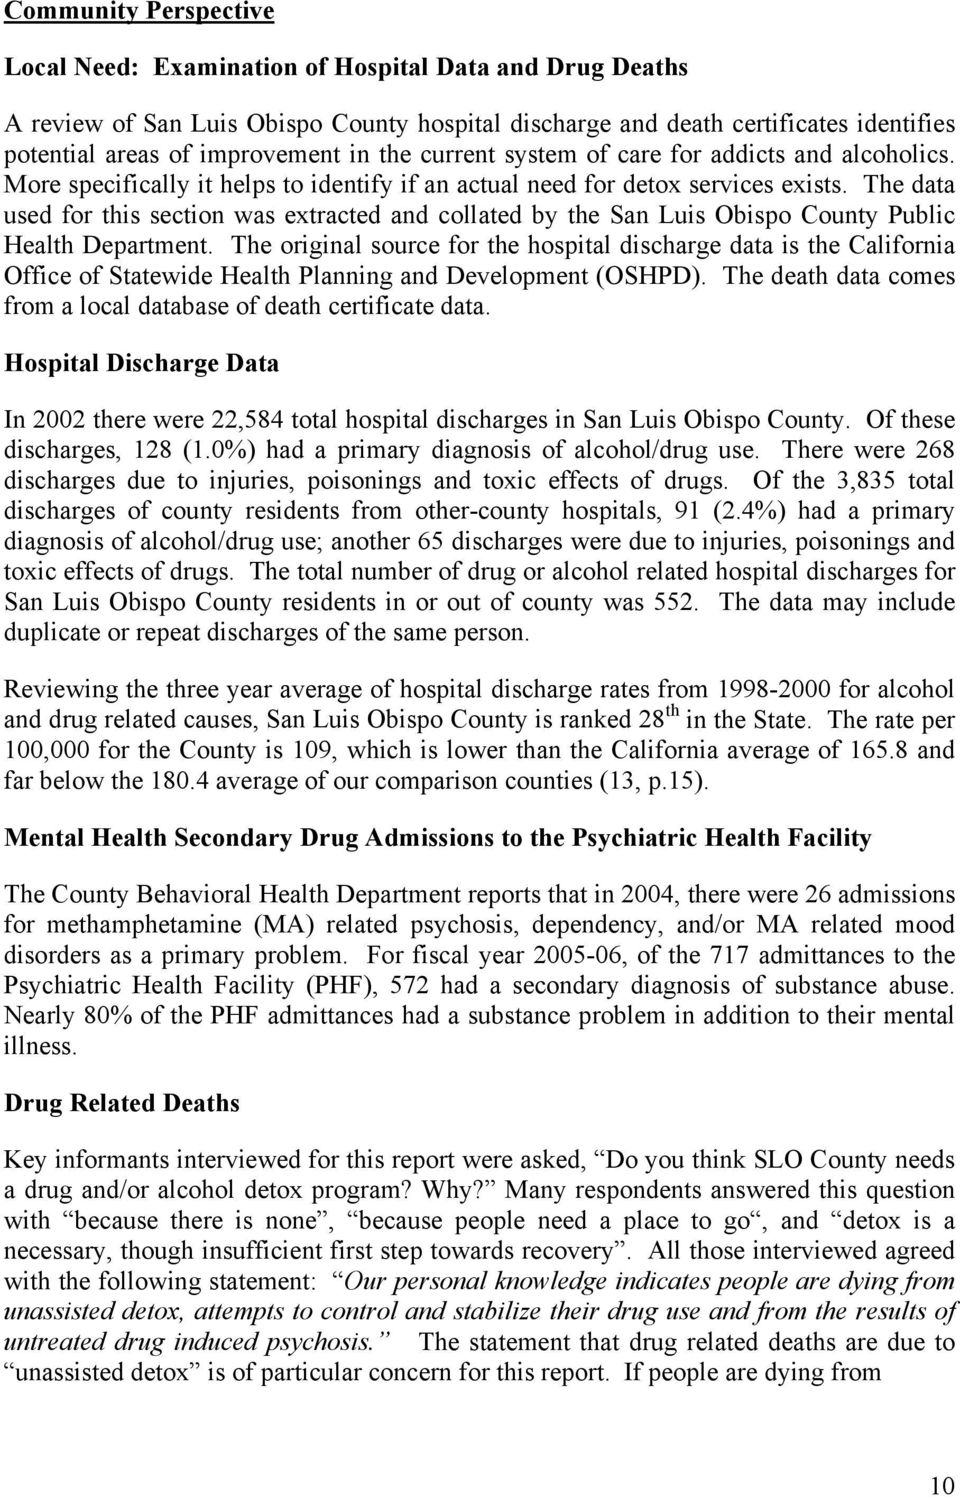 The data used for this section was extracted and collated by the San Luis Obispo County Public Health Department.